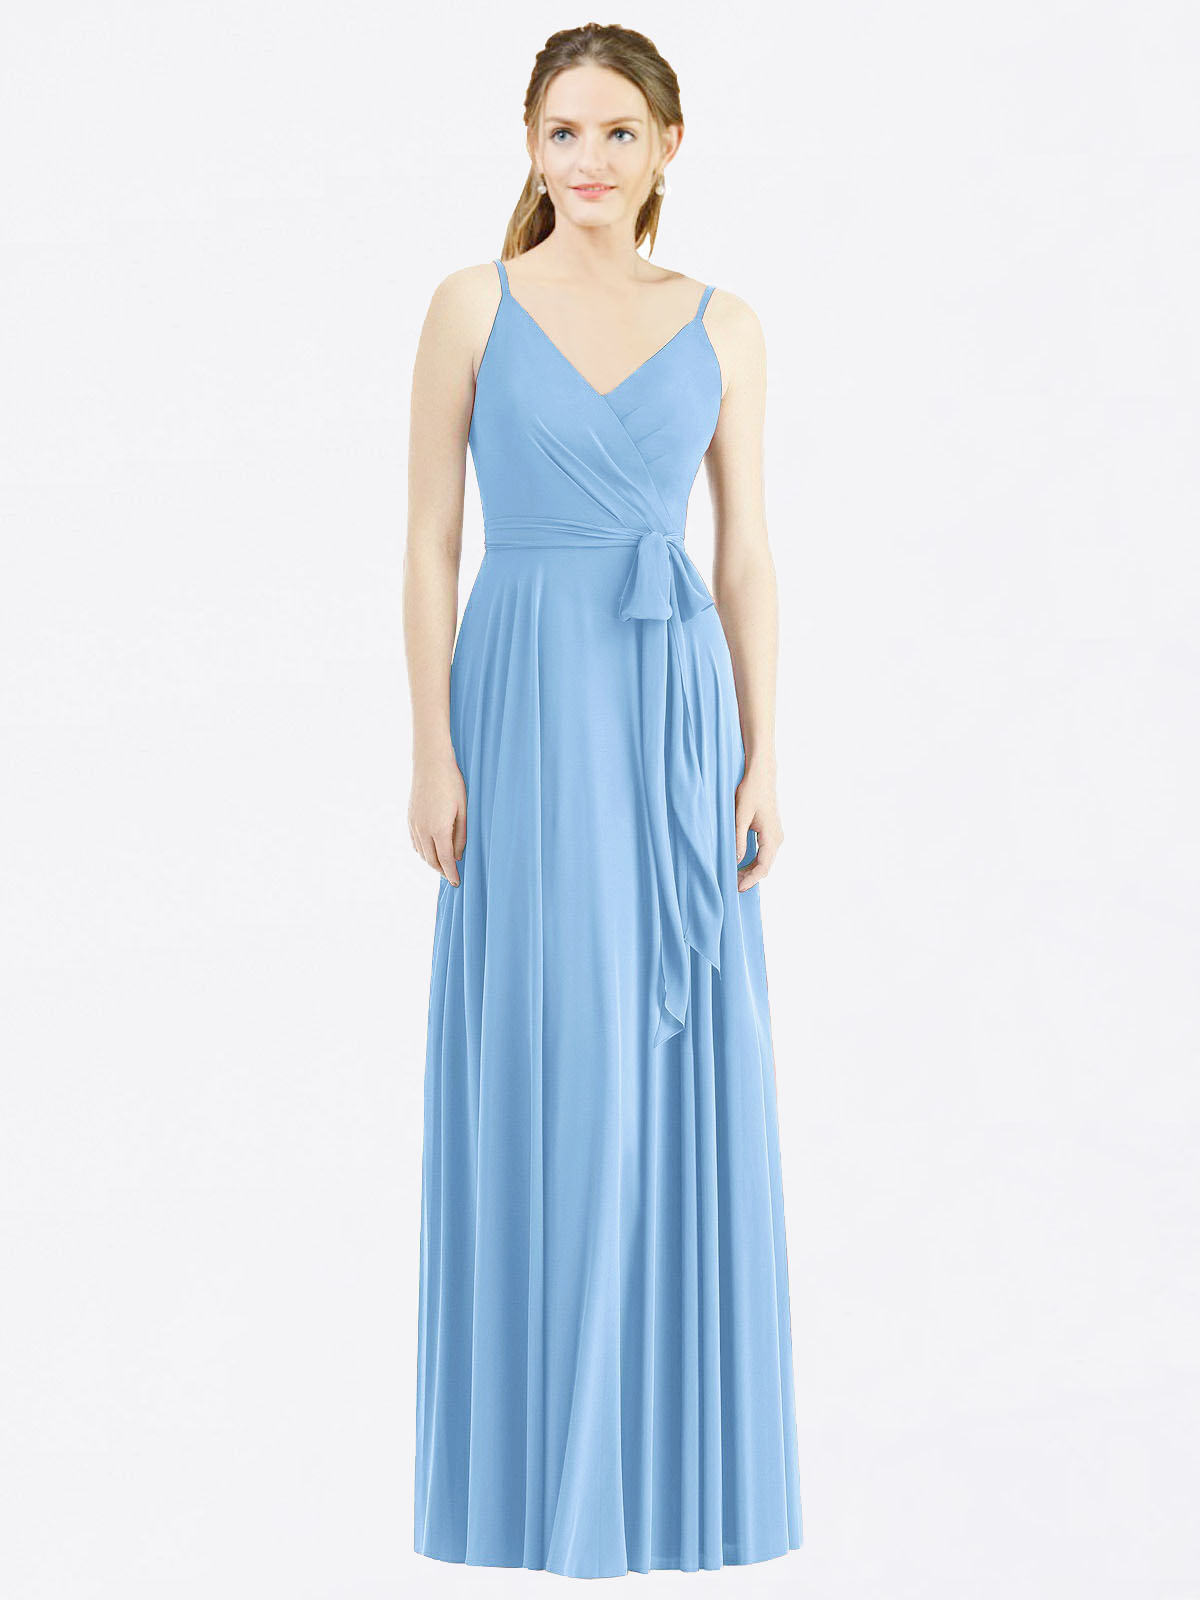 Long A-Line Spaghetti Straps, V-Neck Sleeveless Periwinkle Chiffon Bridesmaid Dress Madilyn